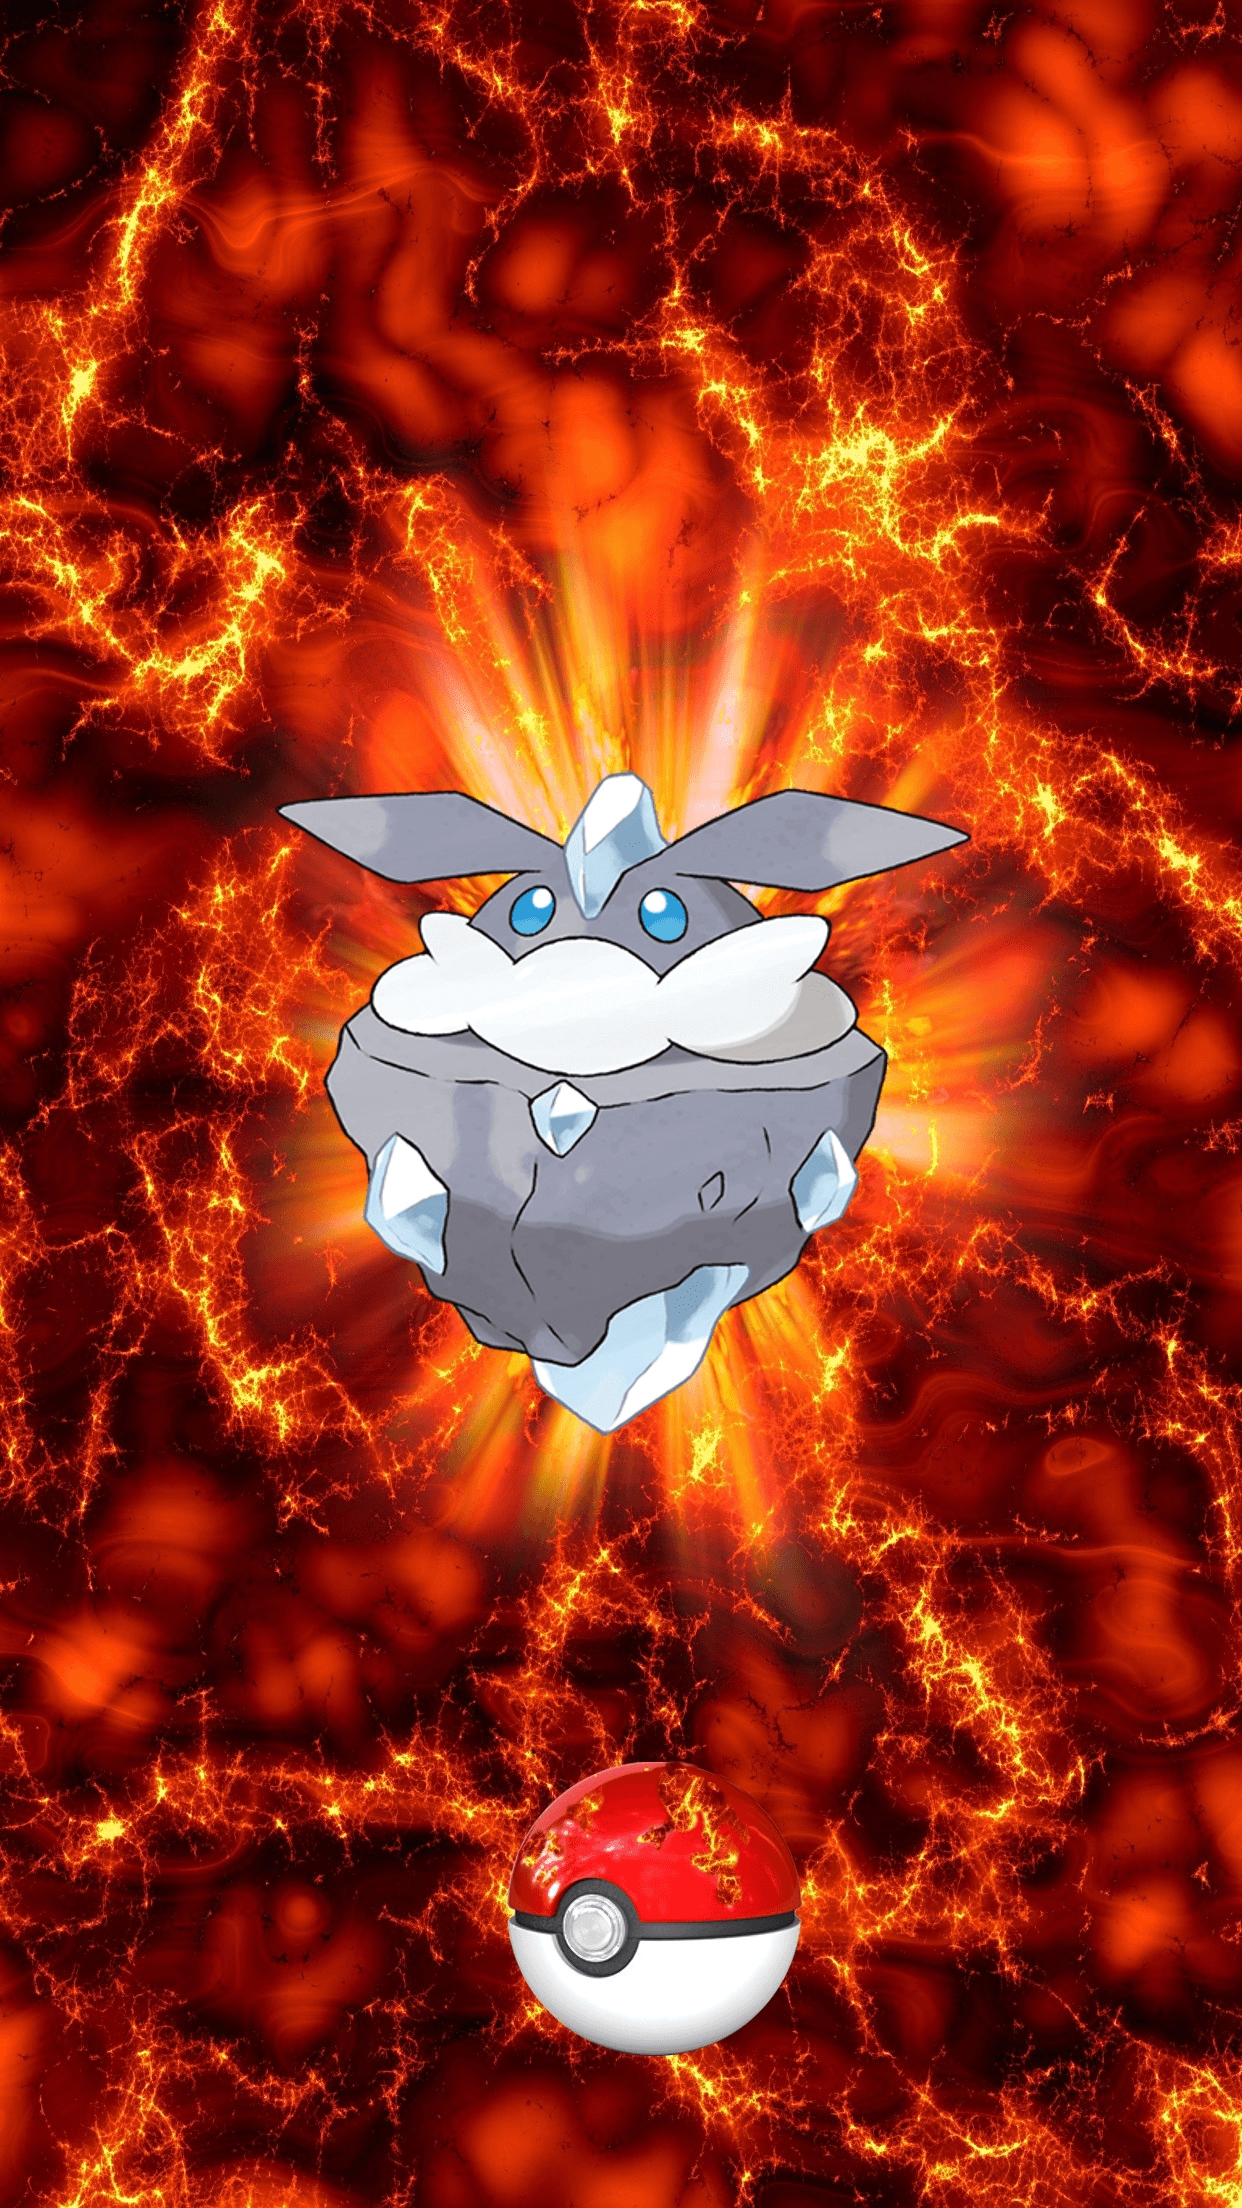 703 Fire Pokeball Carbink Melecie 160 Egg | Wallpaper